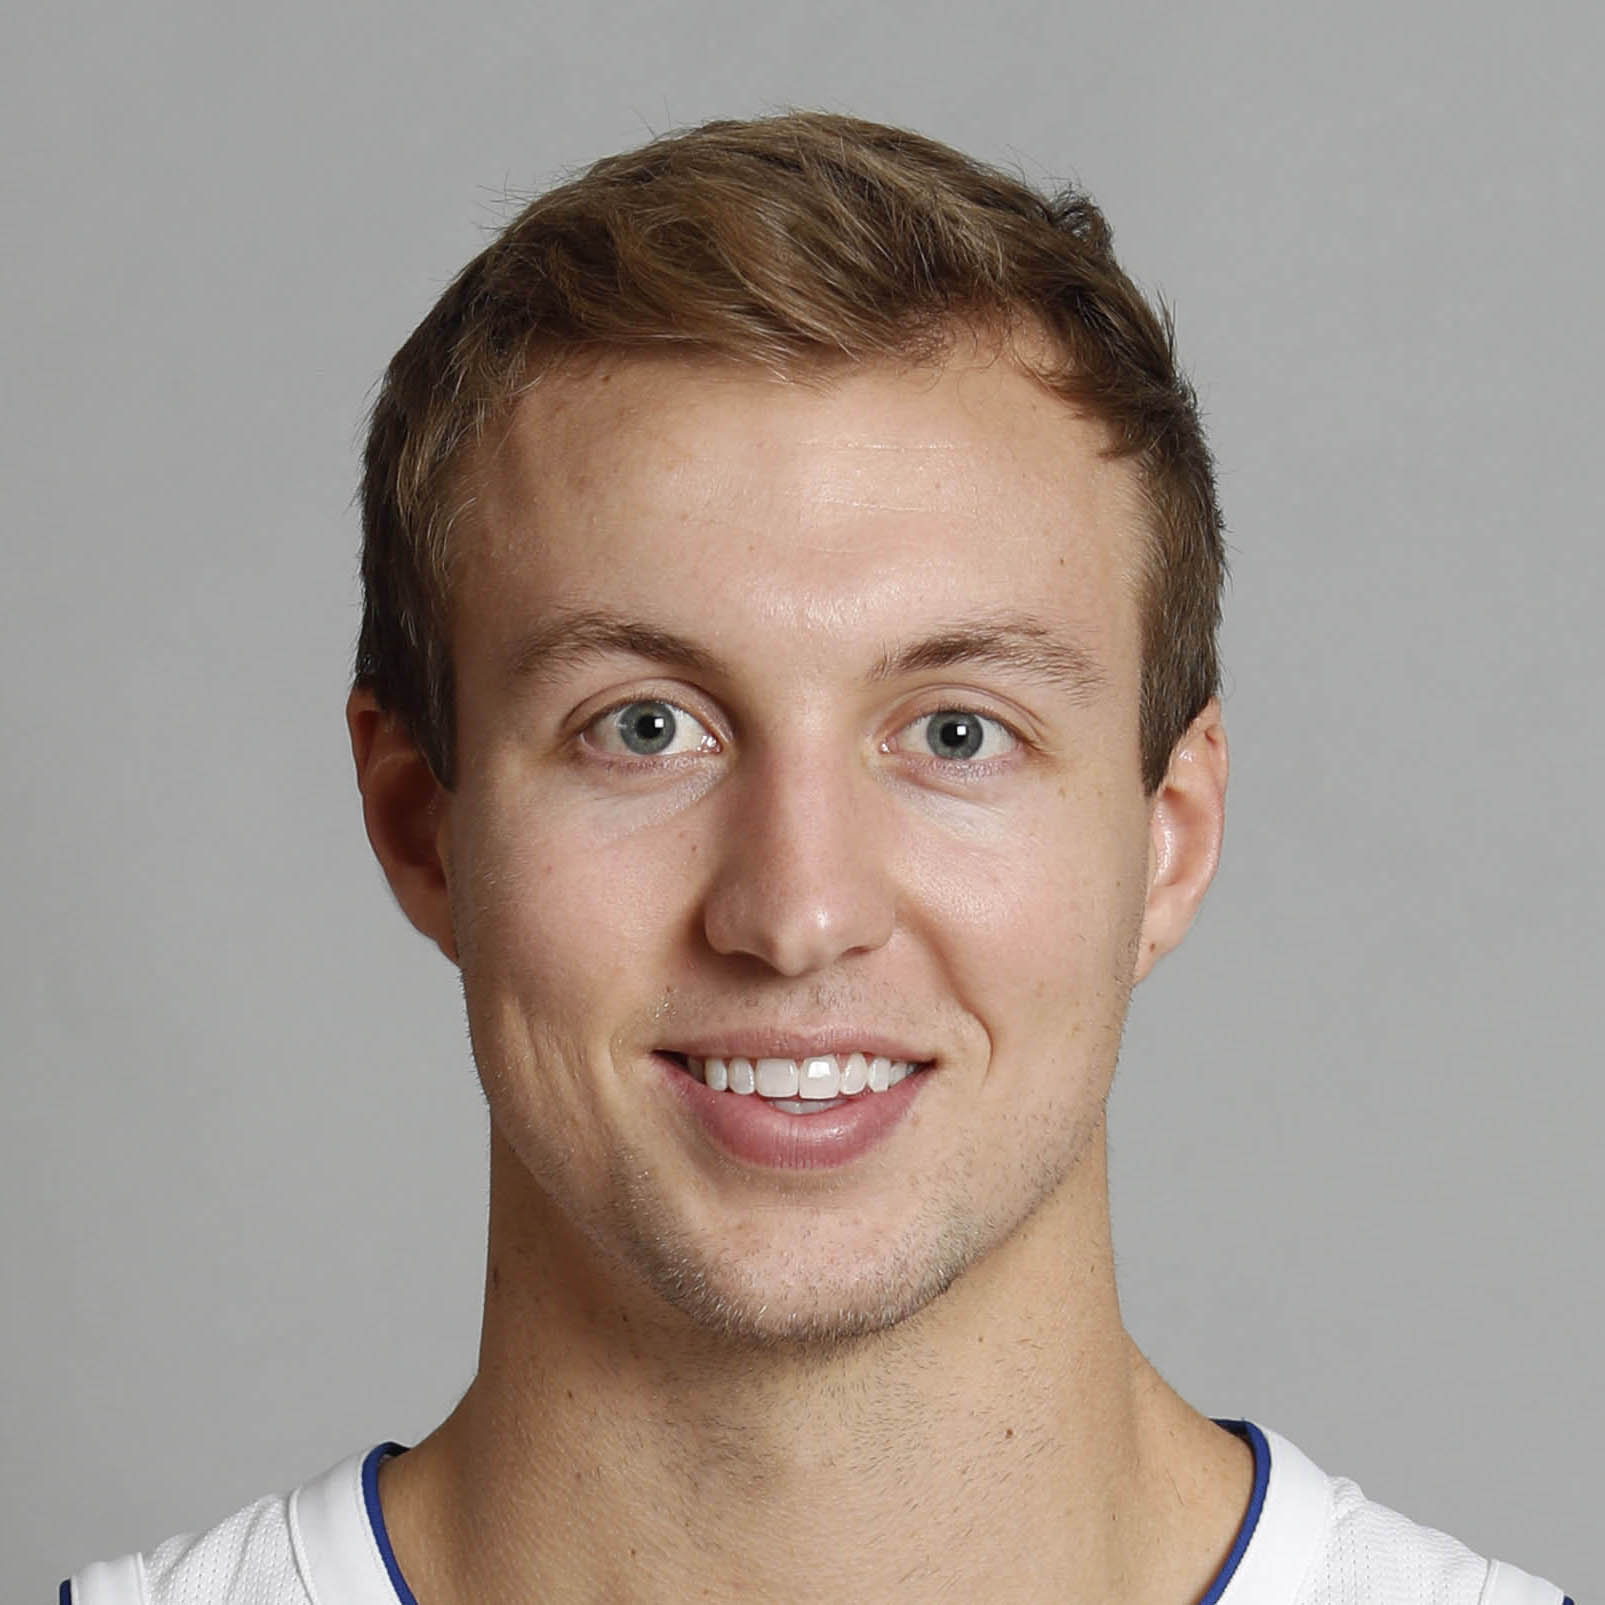 Luke Kennard Headshot